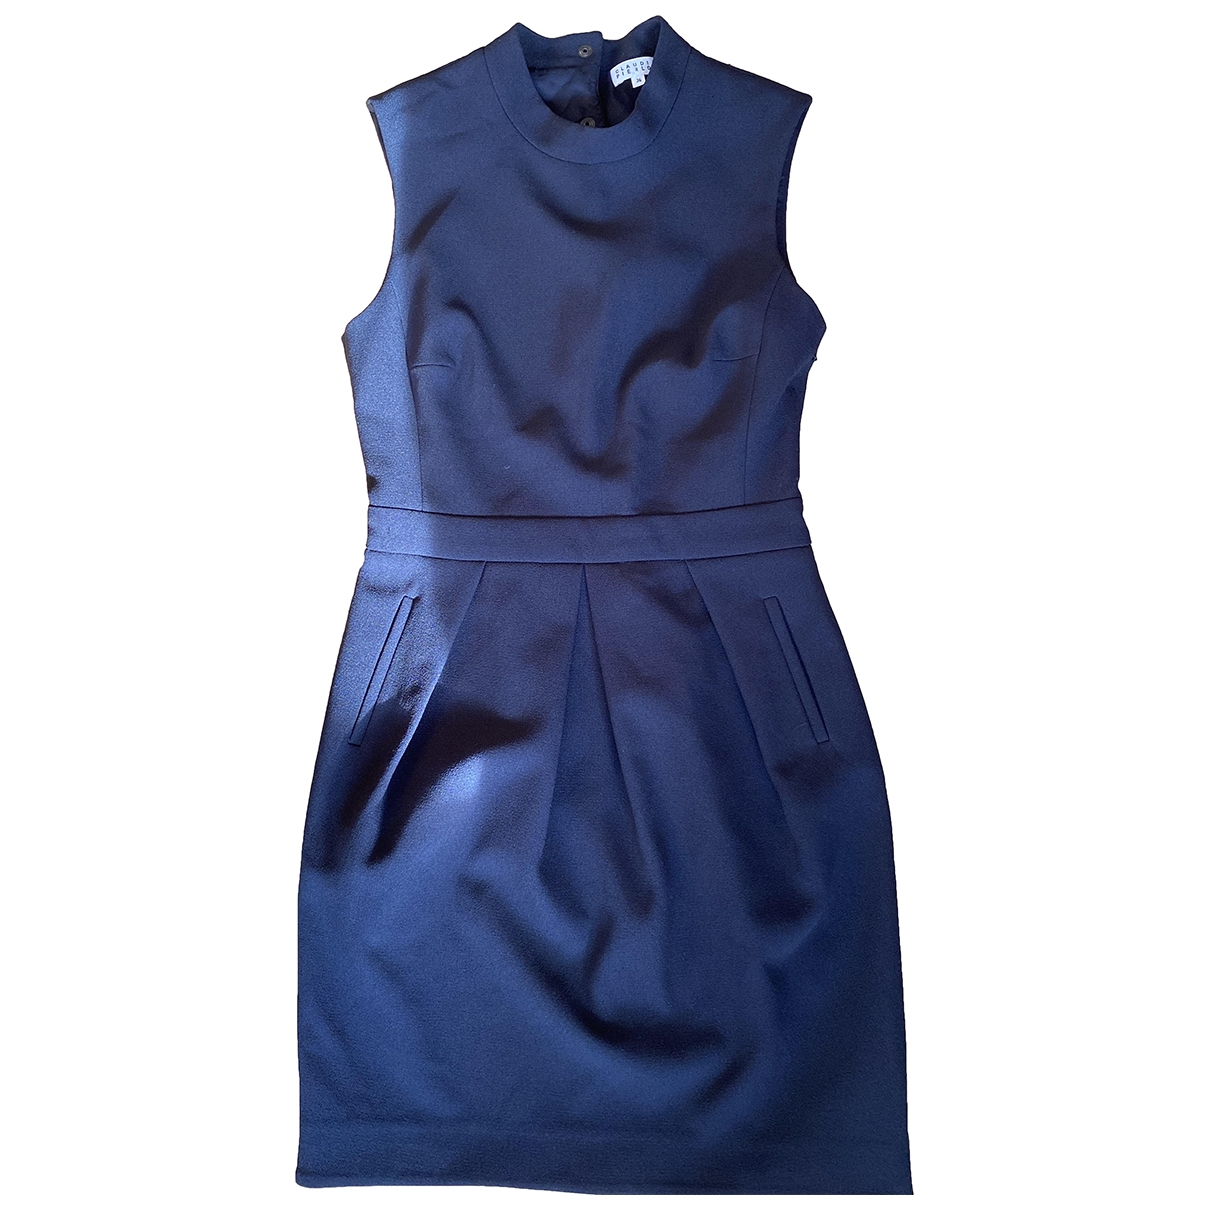 Claudie Pierlot \N Kleid in  Blau Polyester